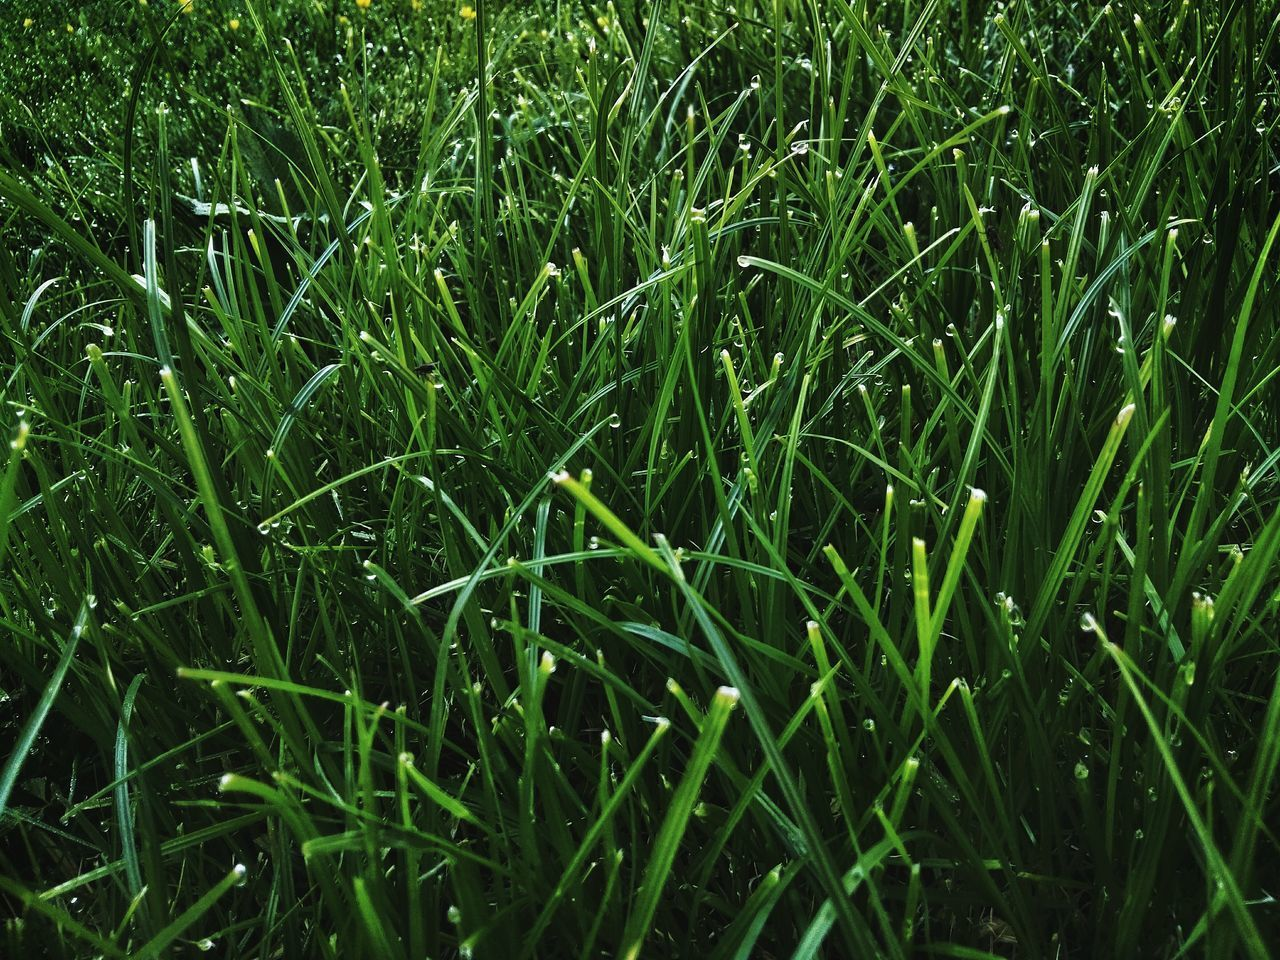 Tautropfen Growth Green Color Gras  Nature Field Grass Backgrounds Full Frame Agriculture Crop  Cereal Plant No People Beauty In Nature Day Plant Outdoors Rural Scene Close-up Freshness Schnittgut Gewachsen